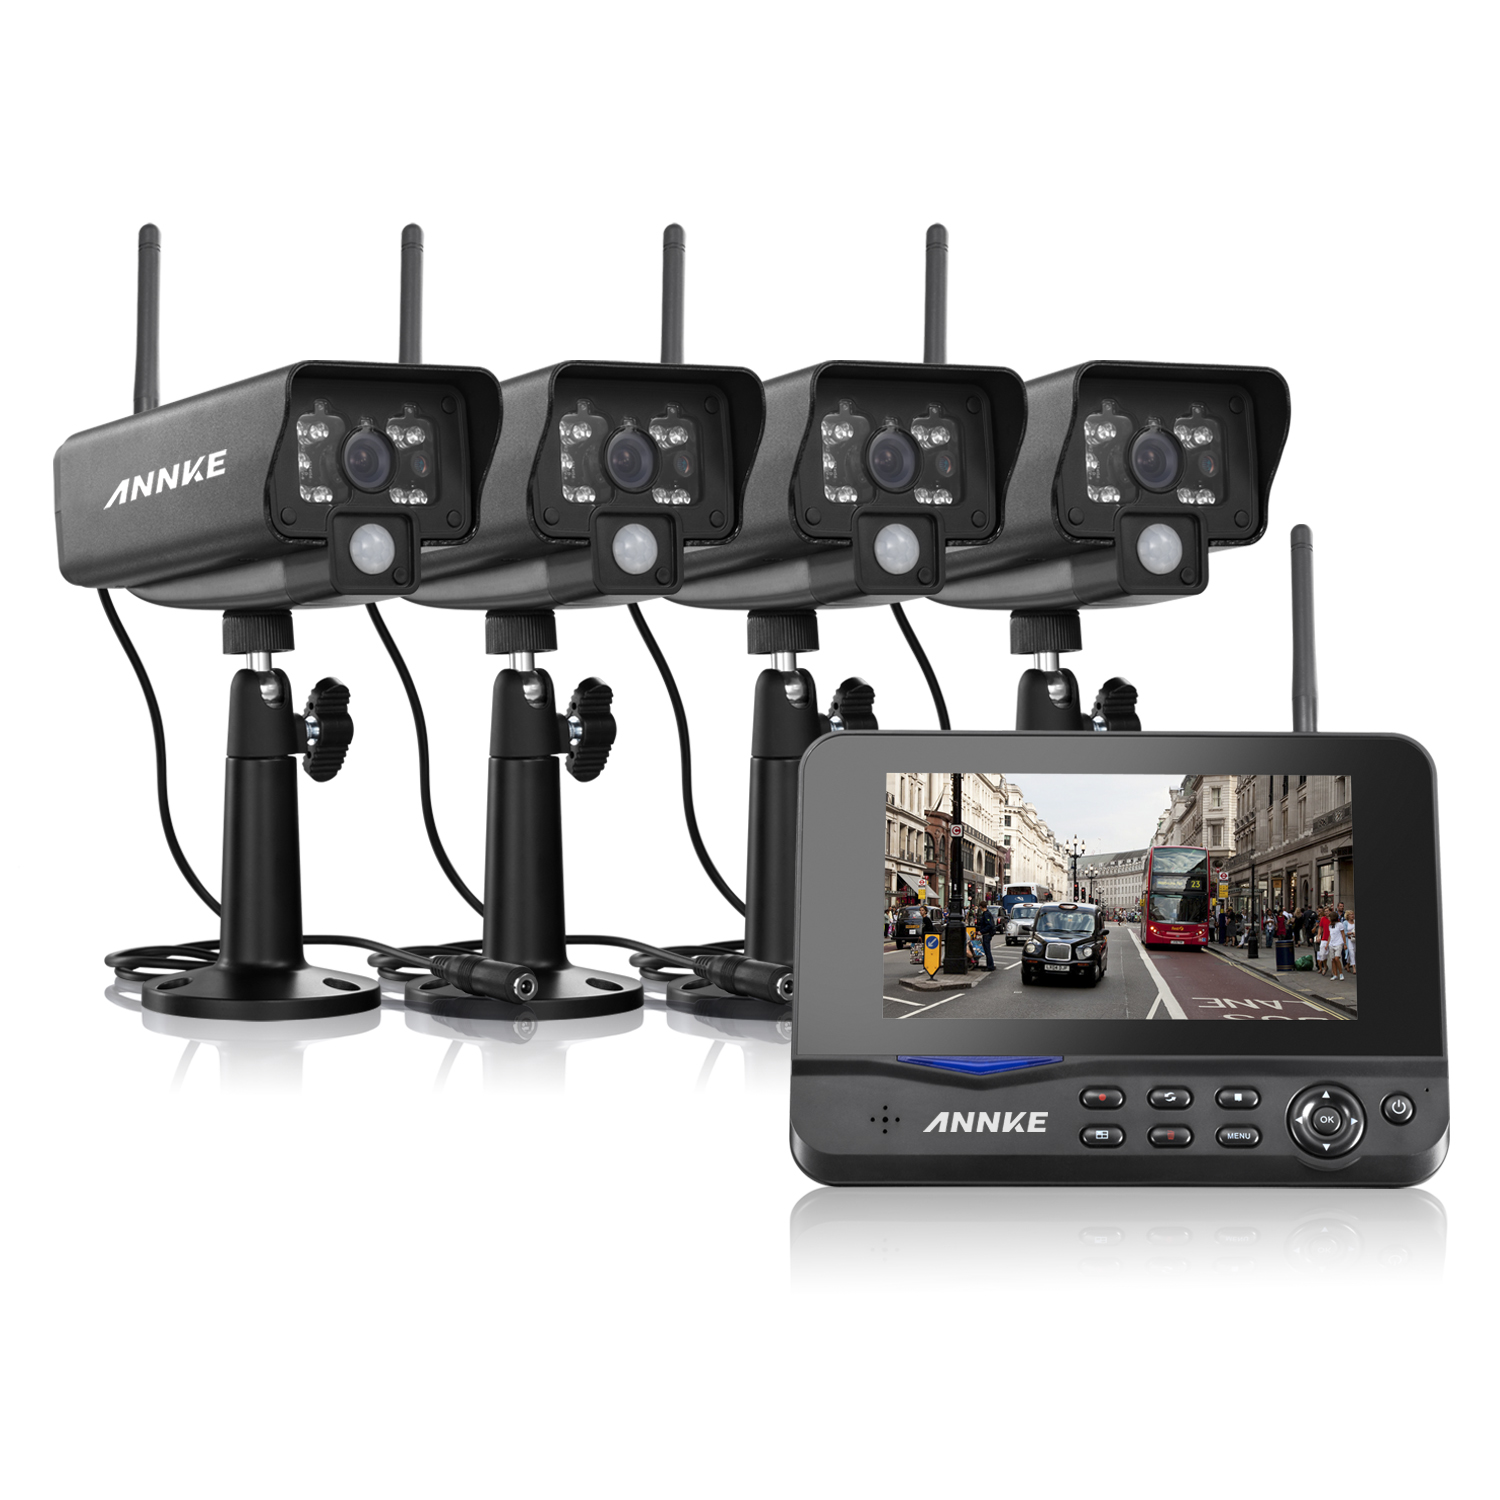 Annke Wireless Digital Home 4CH DVR + 4 Infrared Night Vision Security Camera System with 7'' LED Monitor Support Motion Detecting & Video Storage for Warehoues Garage Backyard Surveillance CCTV